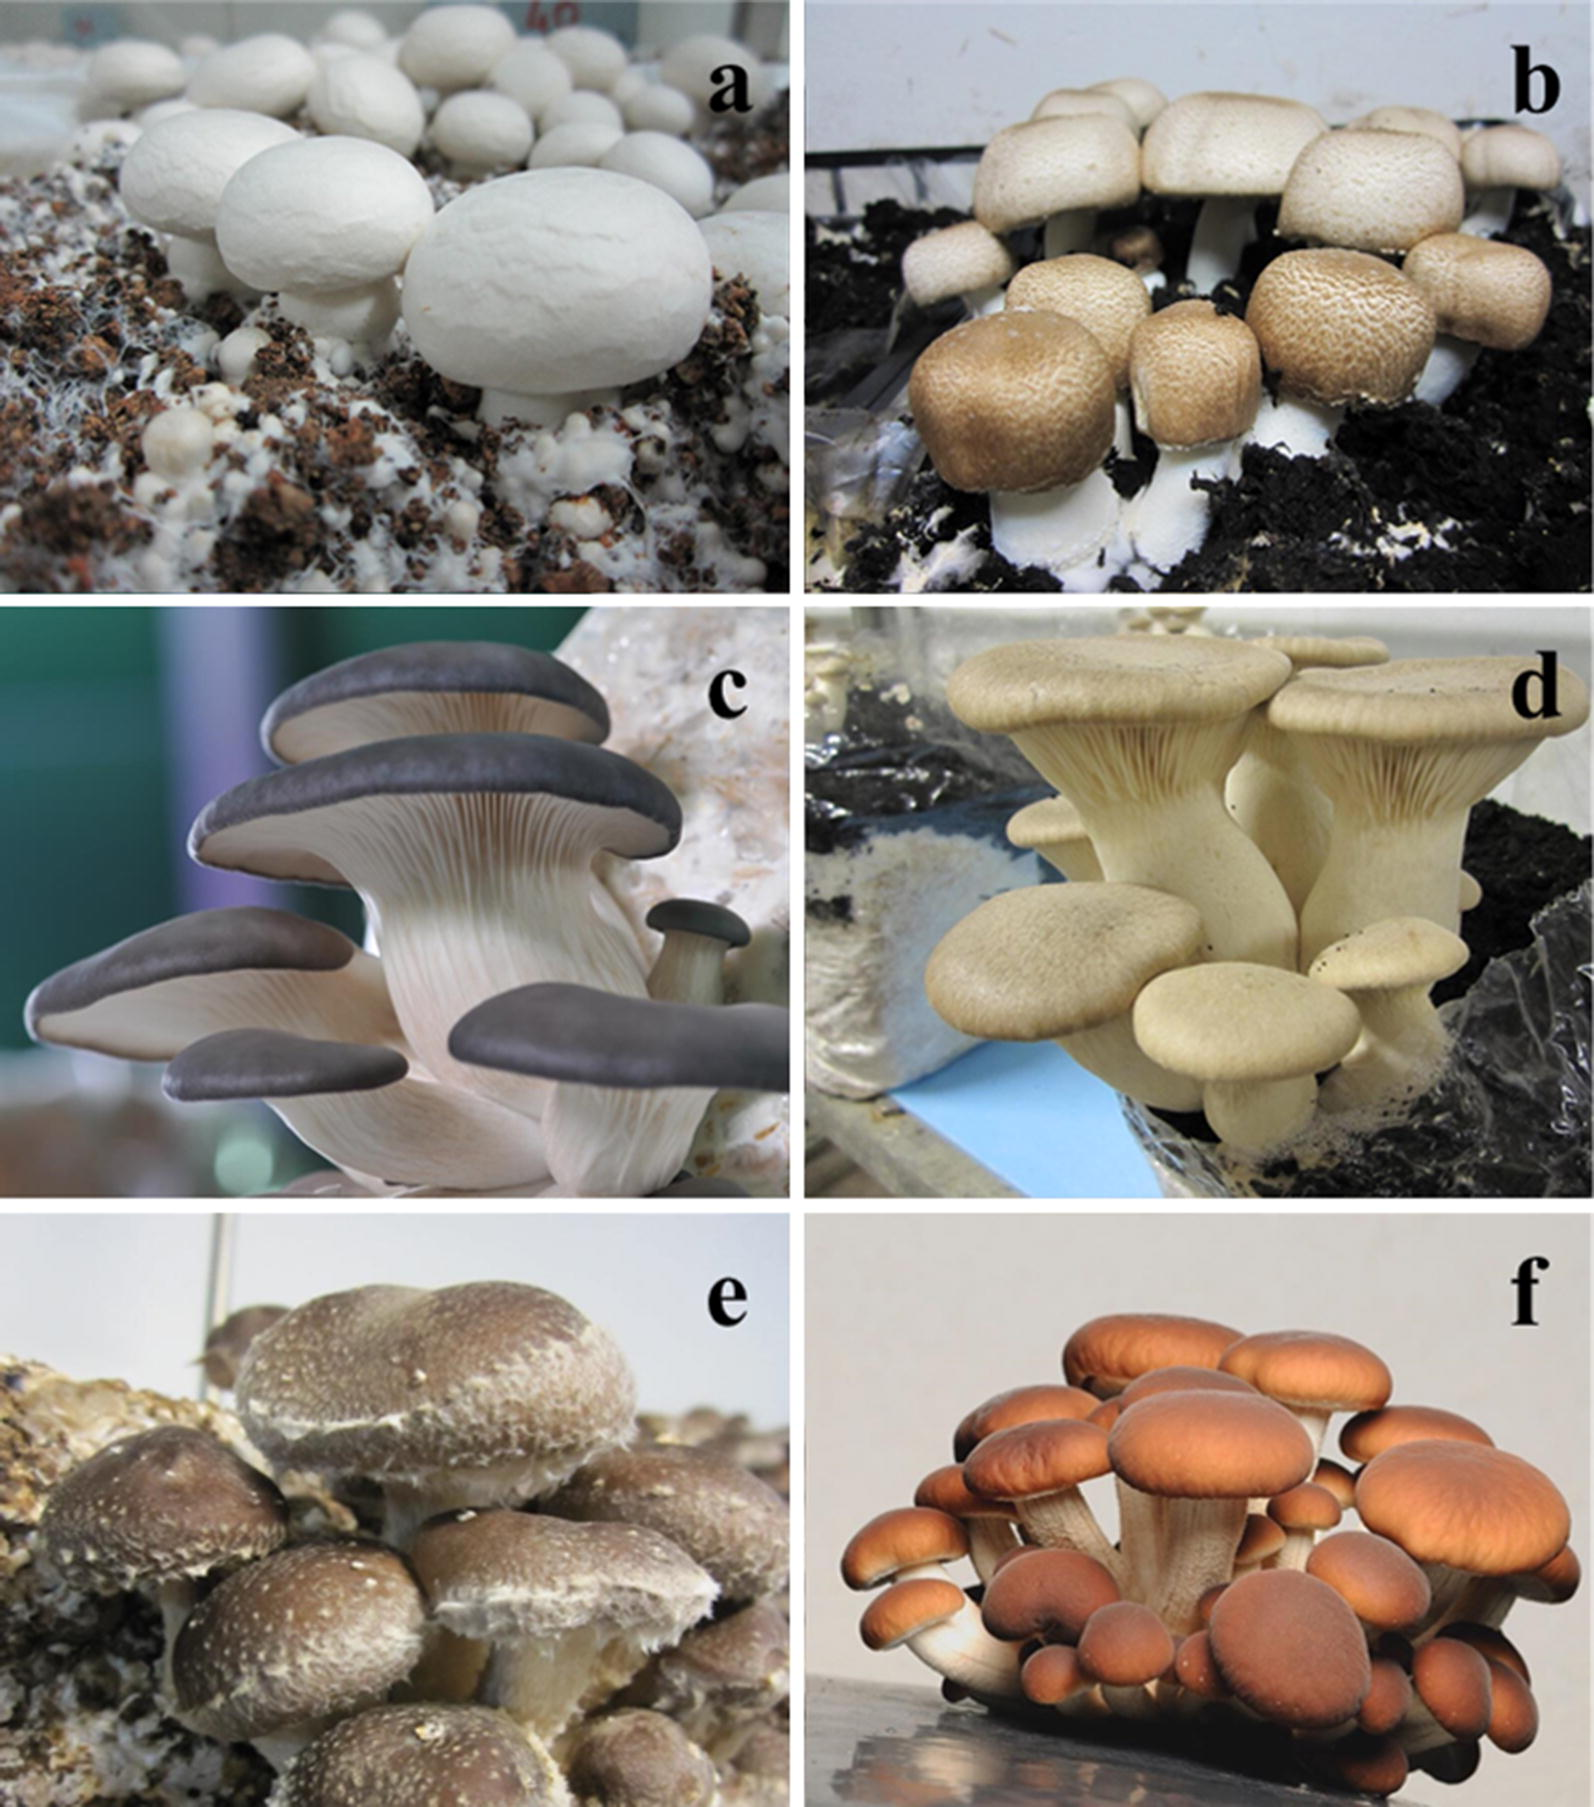 Supplementation in mushroom crops and its impact on yield